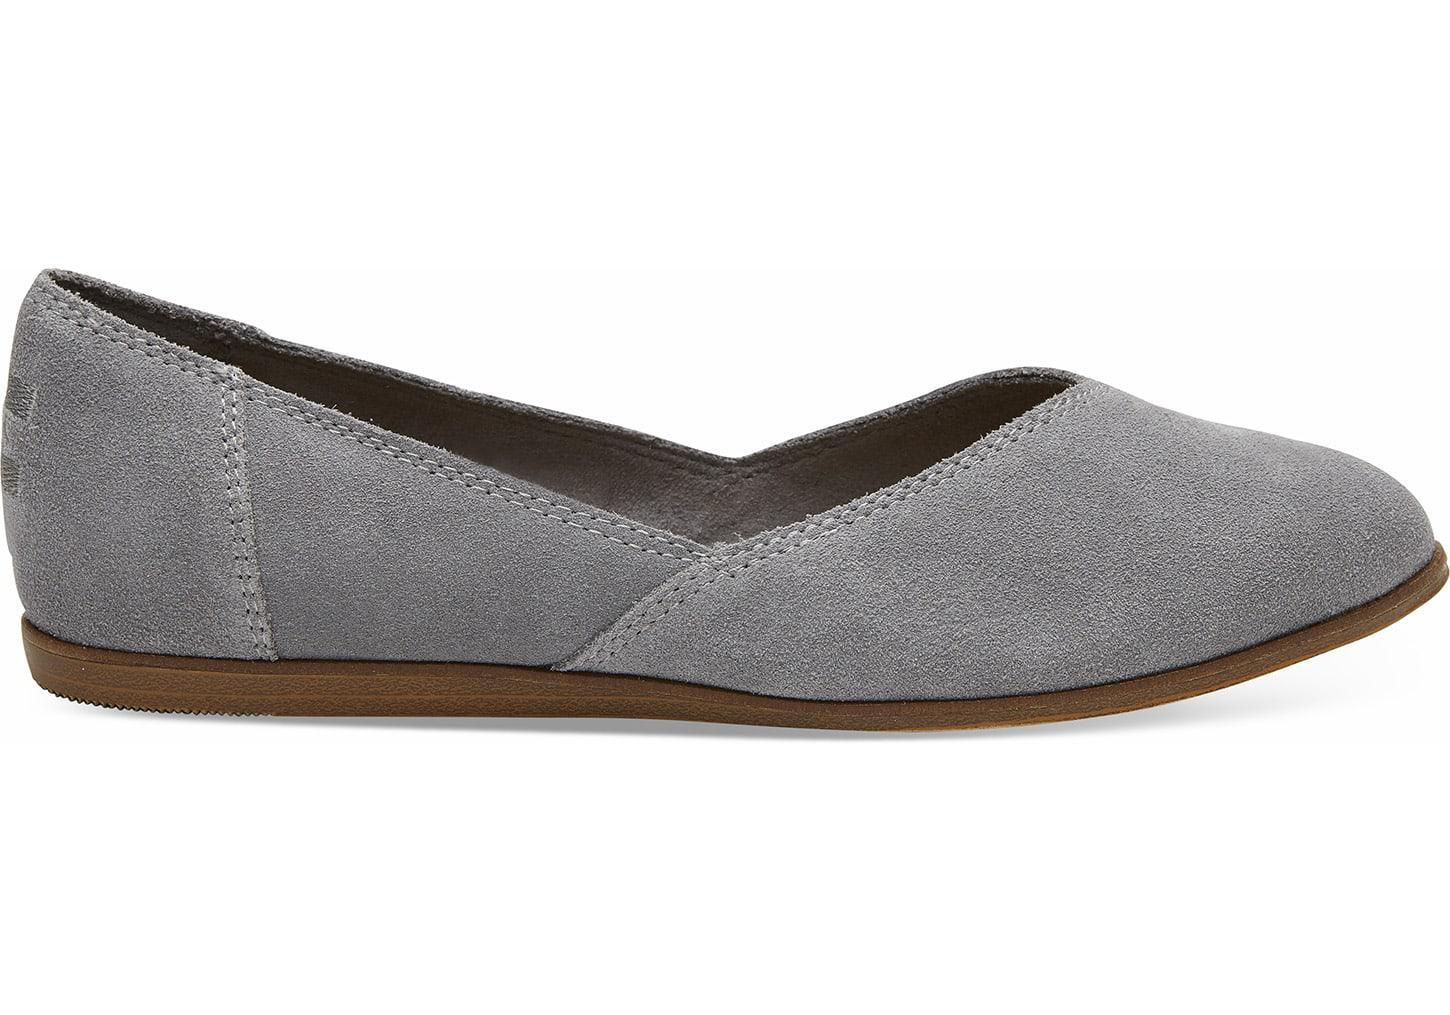 25337524bed9 Toms Shade Suede Women s Jutti Flats in Gray - Lyst